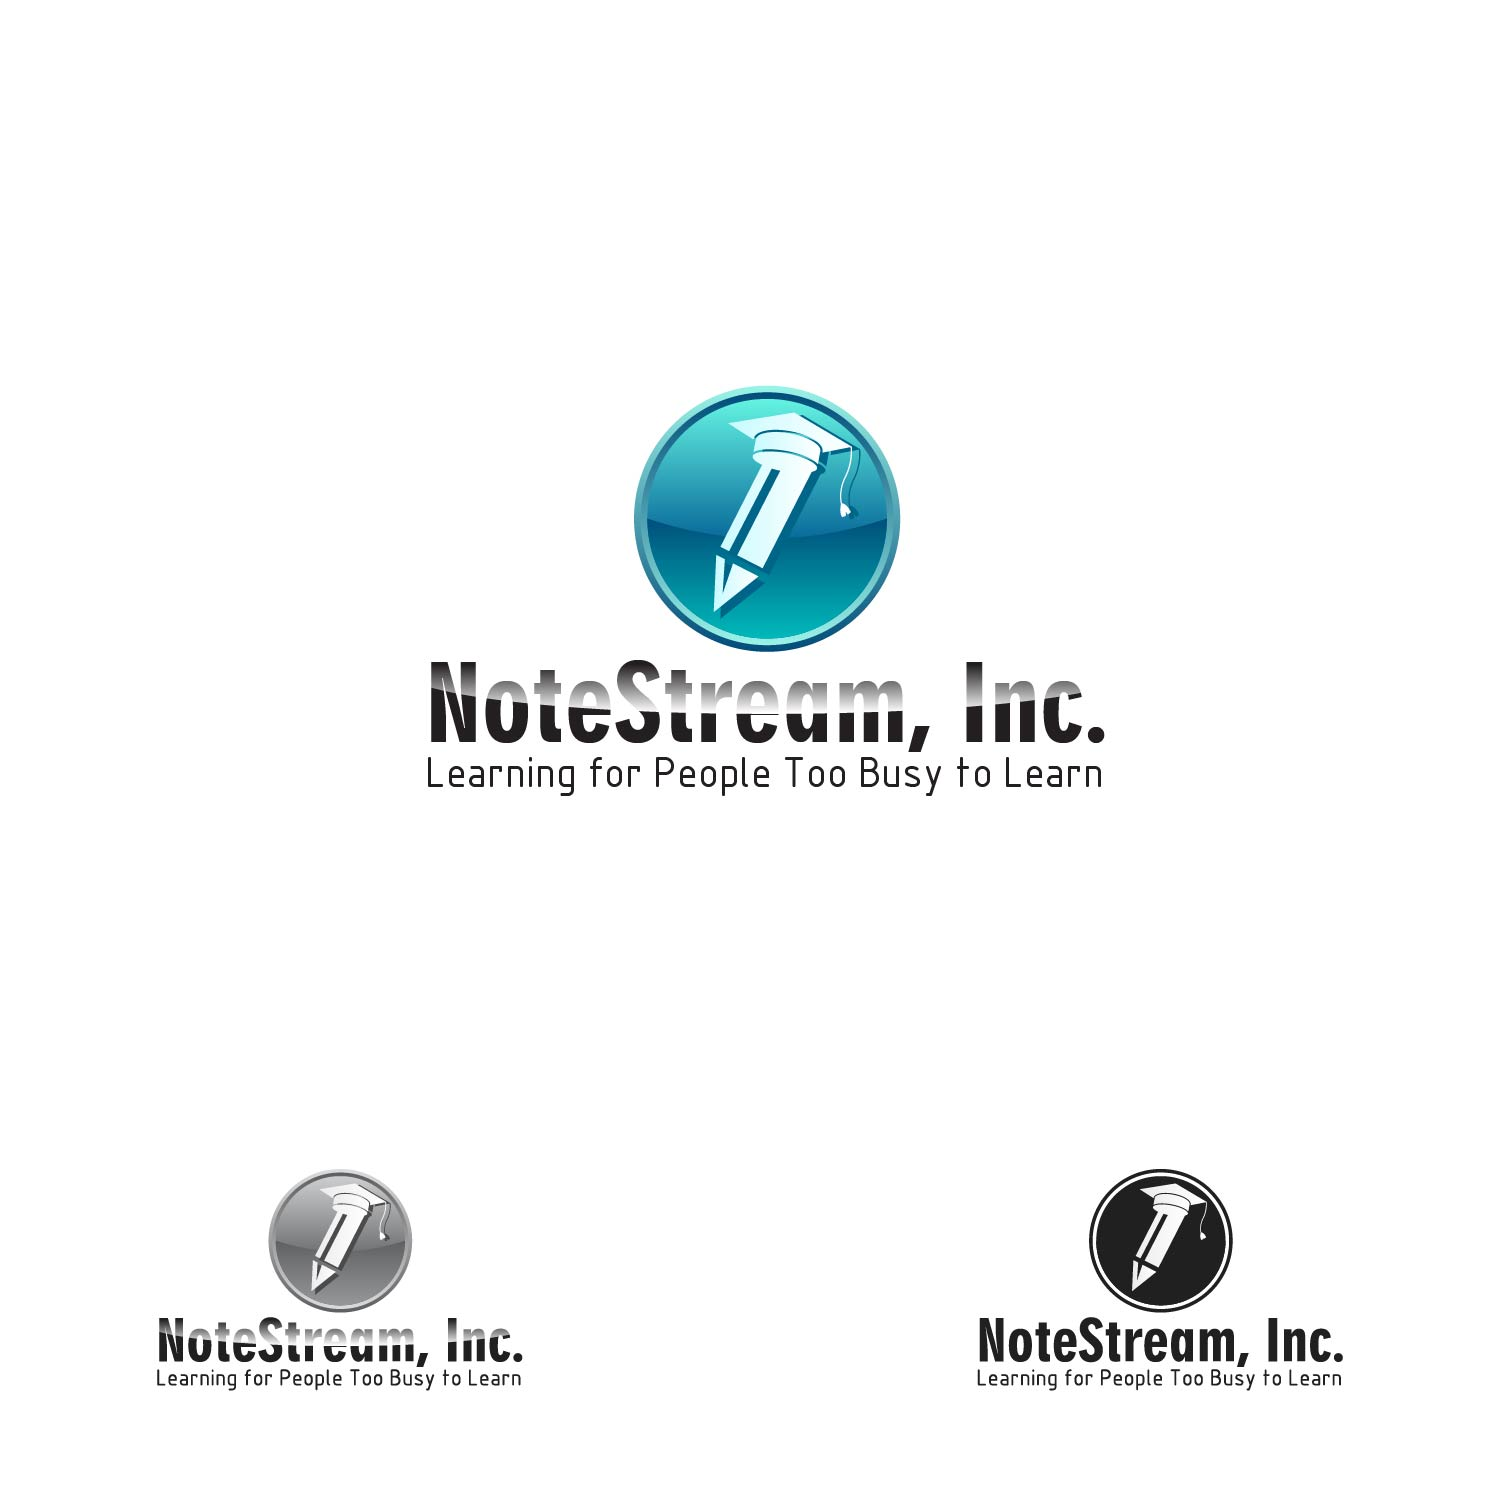 Logo Design by lagalag - Entry No. 101 in the Logo Design Contest Imaginative Logo Design for NoteStream.